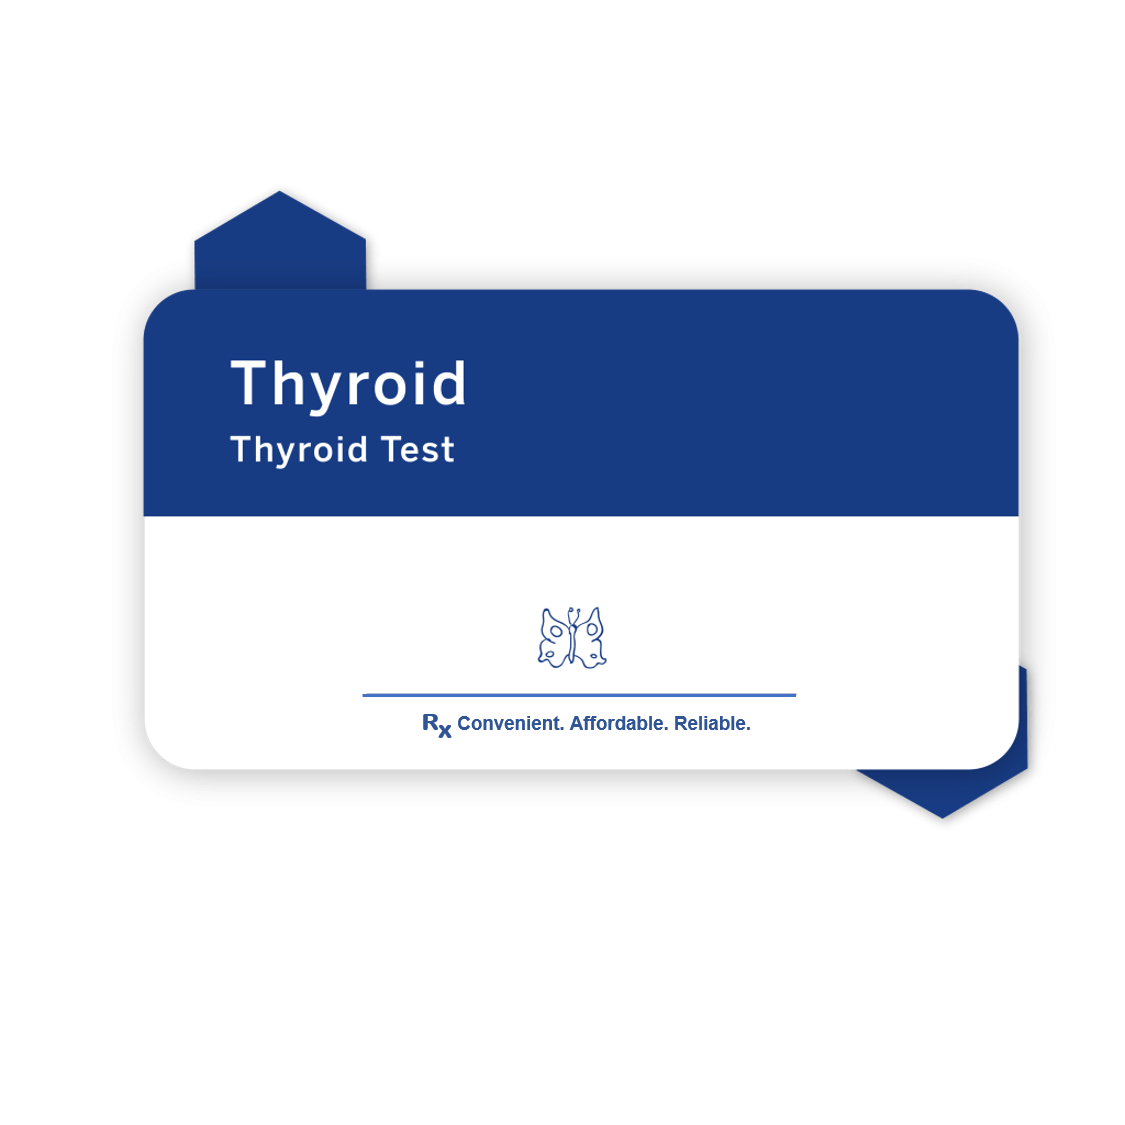 Thyroid Test